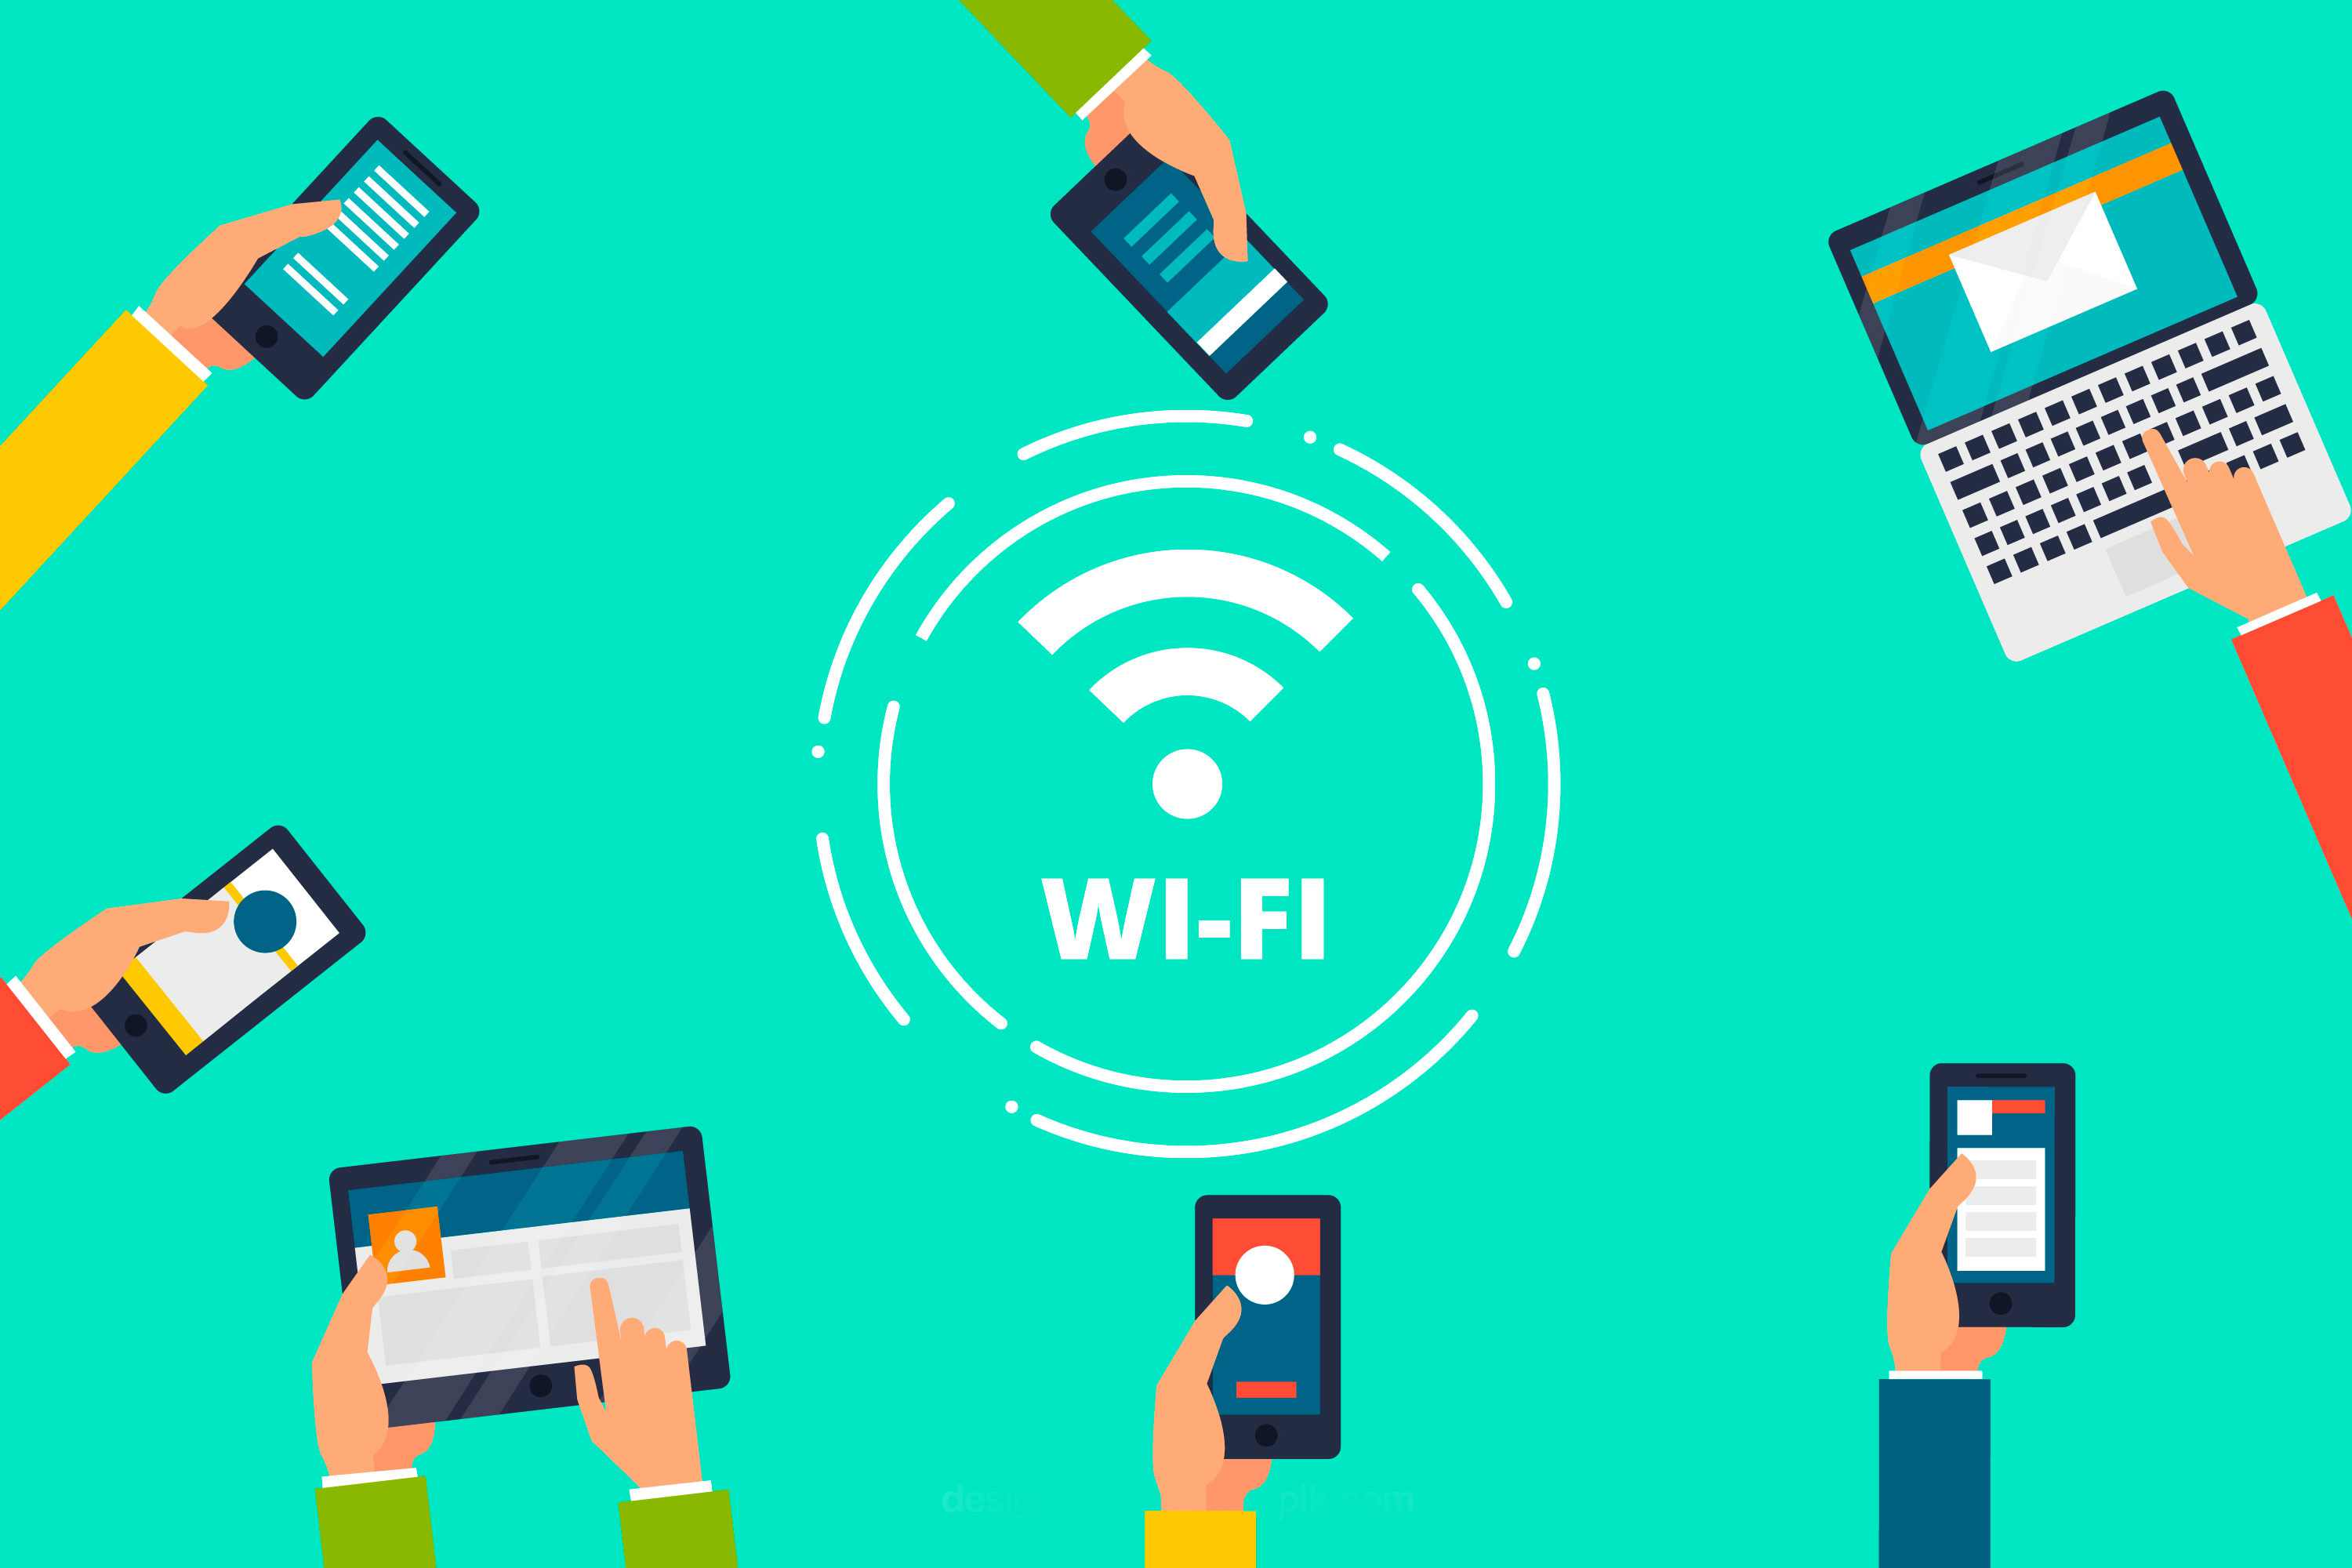 Illustration of people using wifi for free